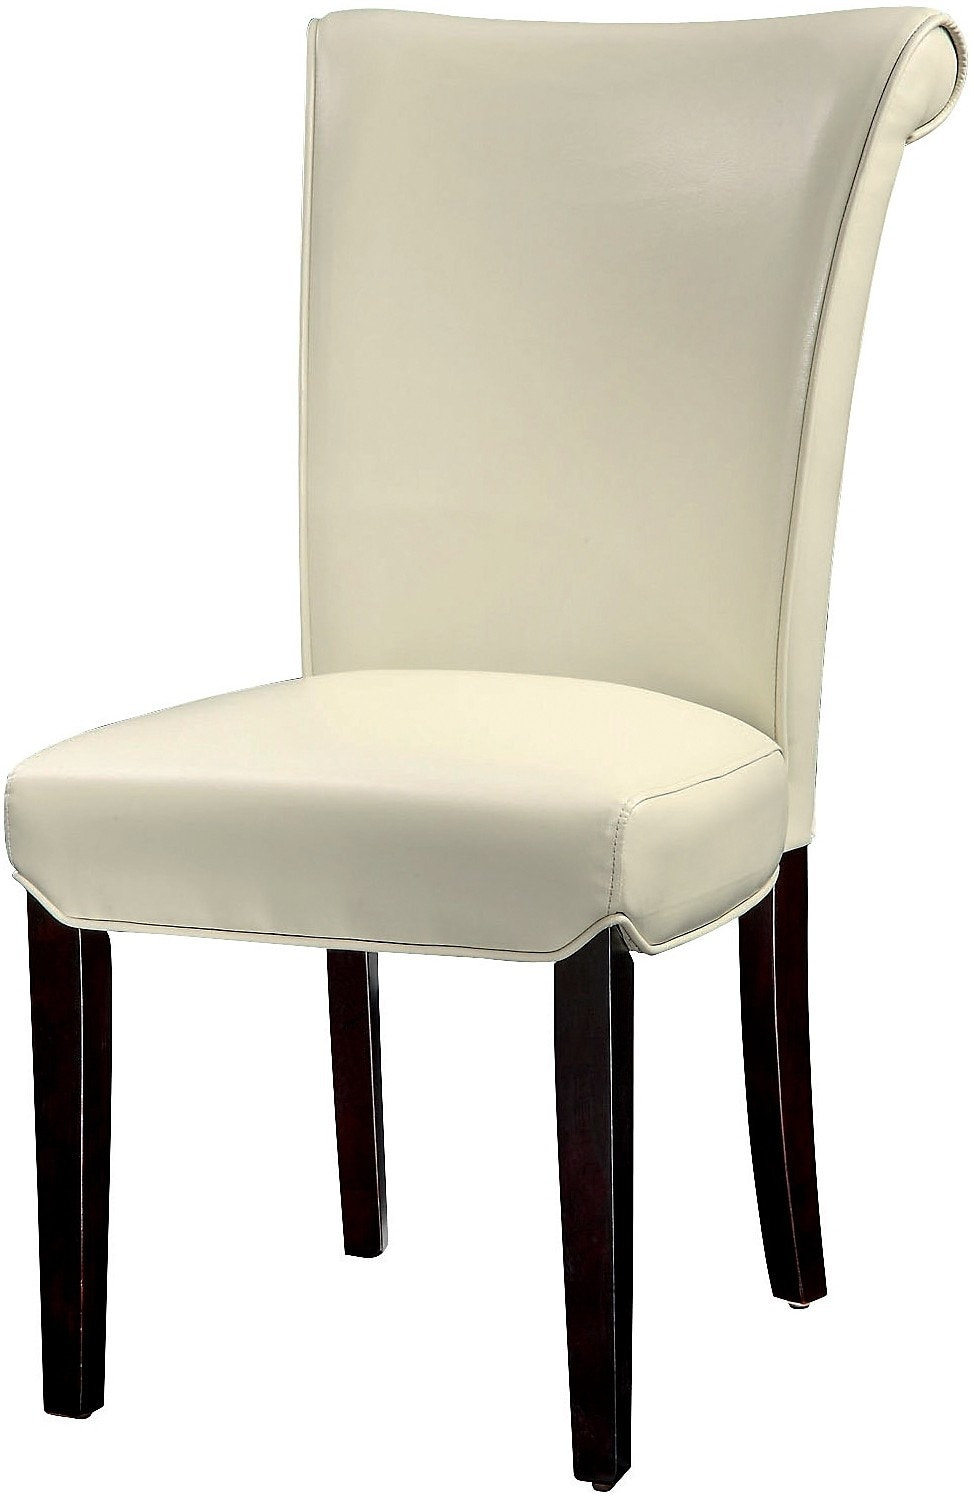 Brogan Dining Chair - Ivory